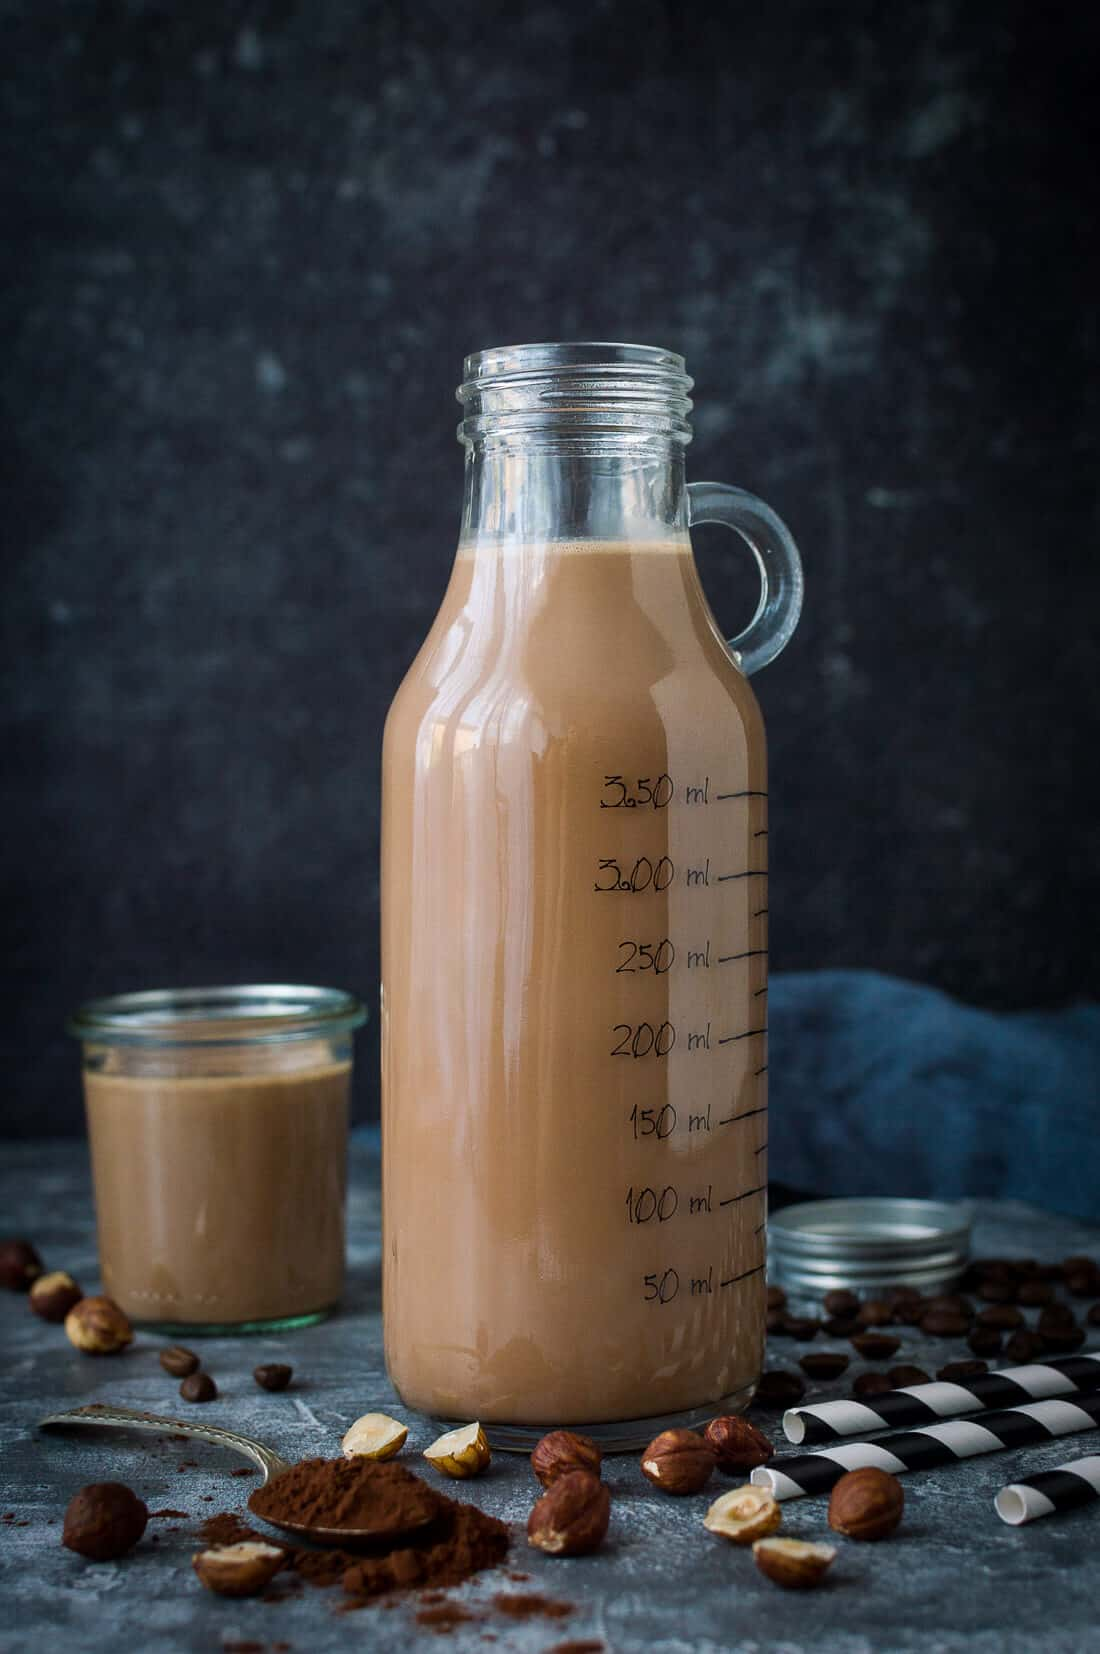 A bottle of mocha hazelnut milk - from scratch chocolate and coffee toasted hazelnut milk. Vegan/refined sugar free